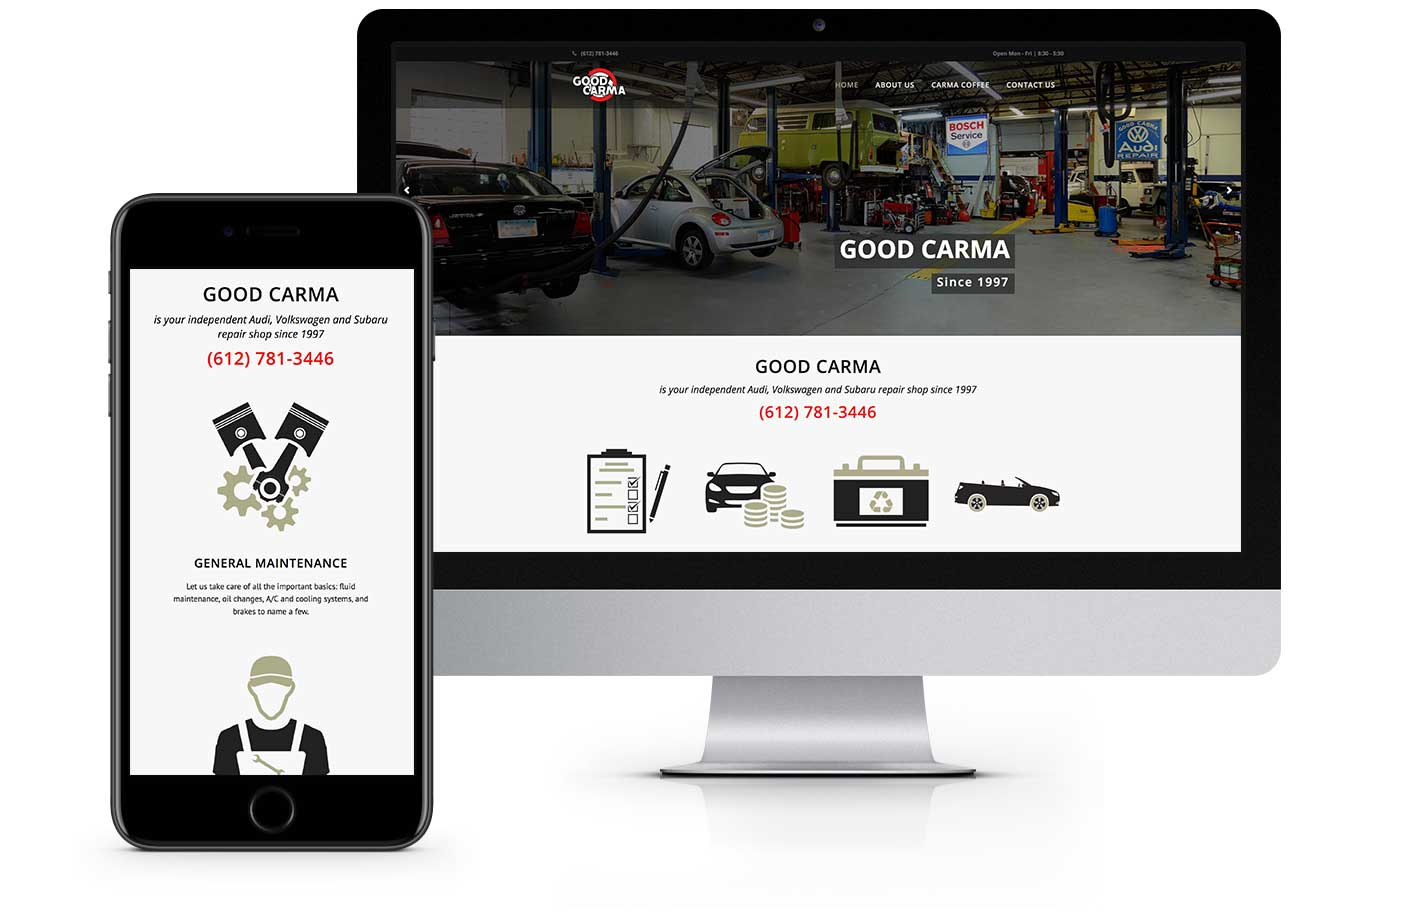 Web Design - Good Carma Auto Repair